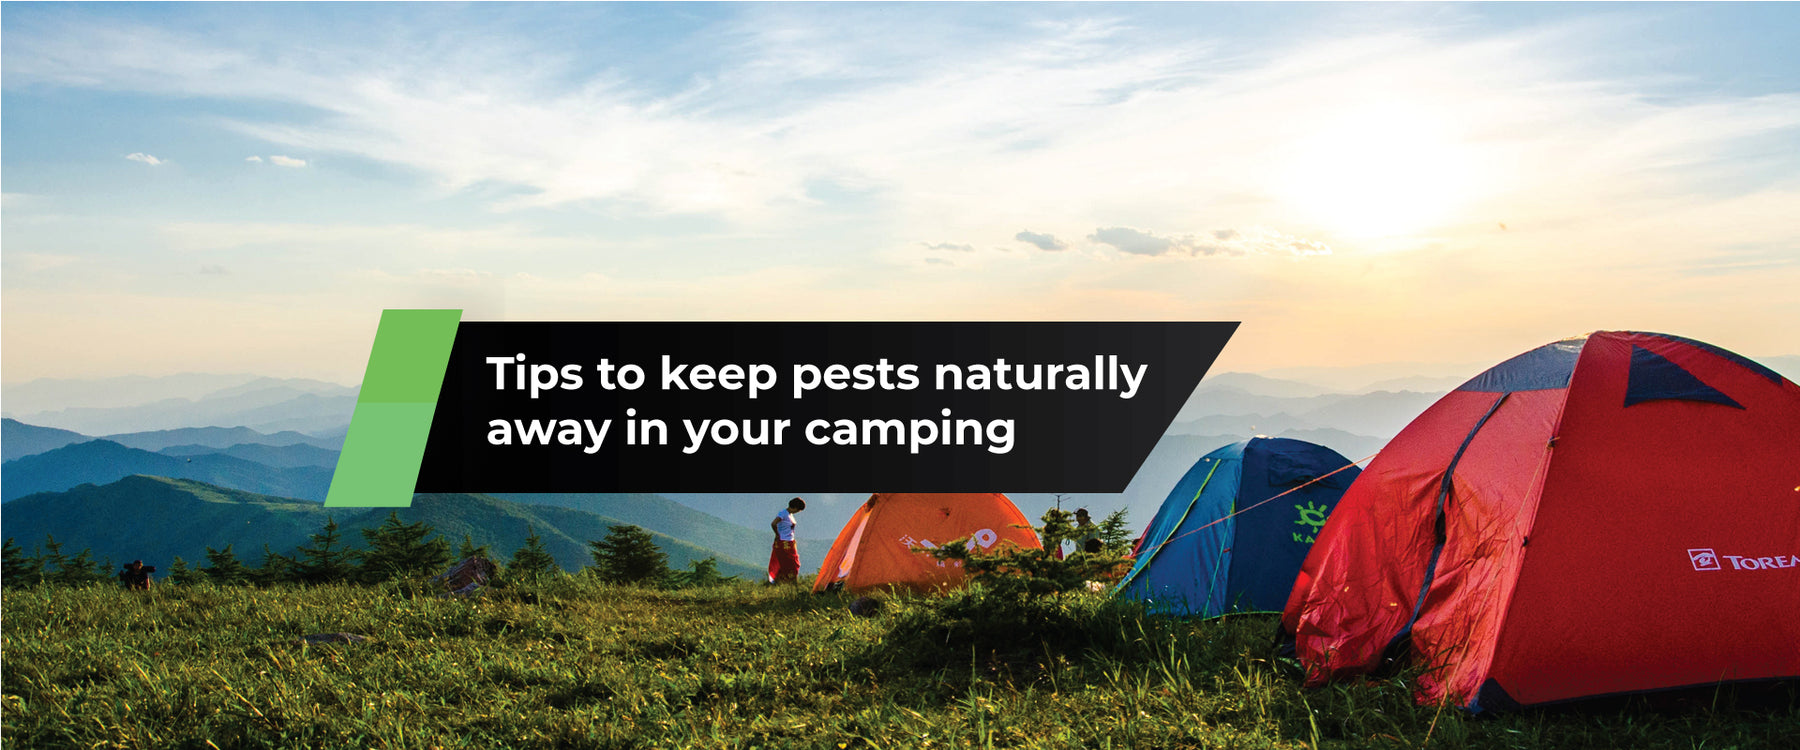 10 Tips to Keep Pests Away While Camping